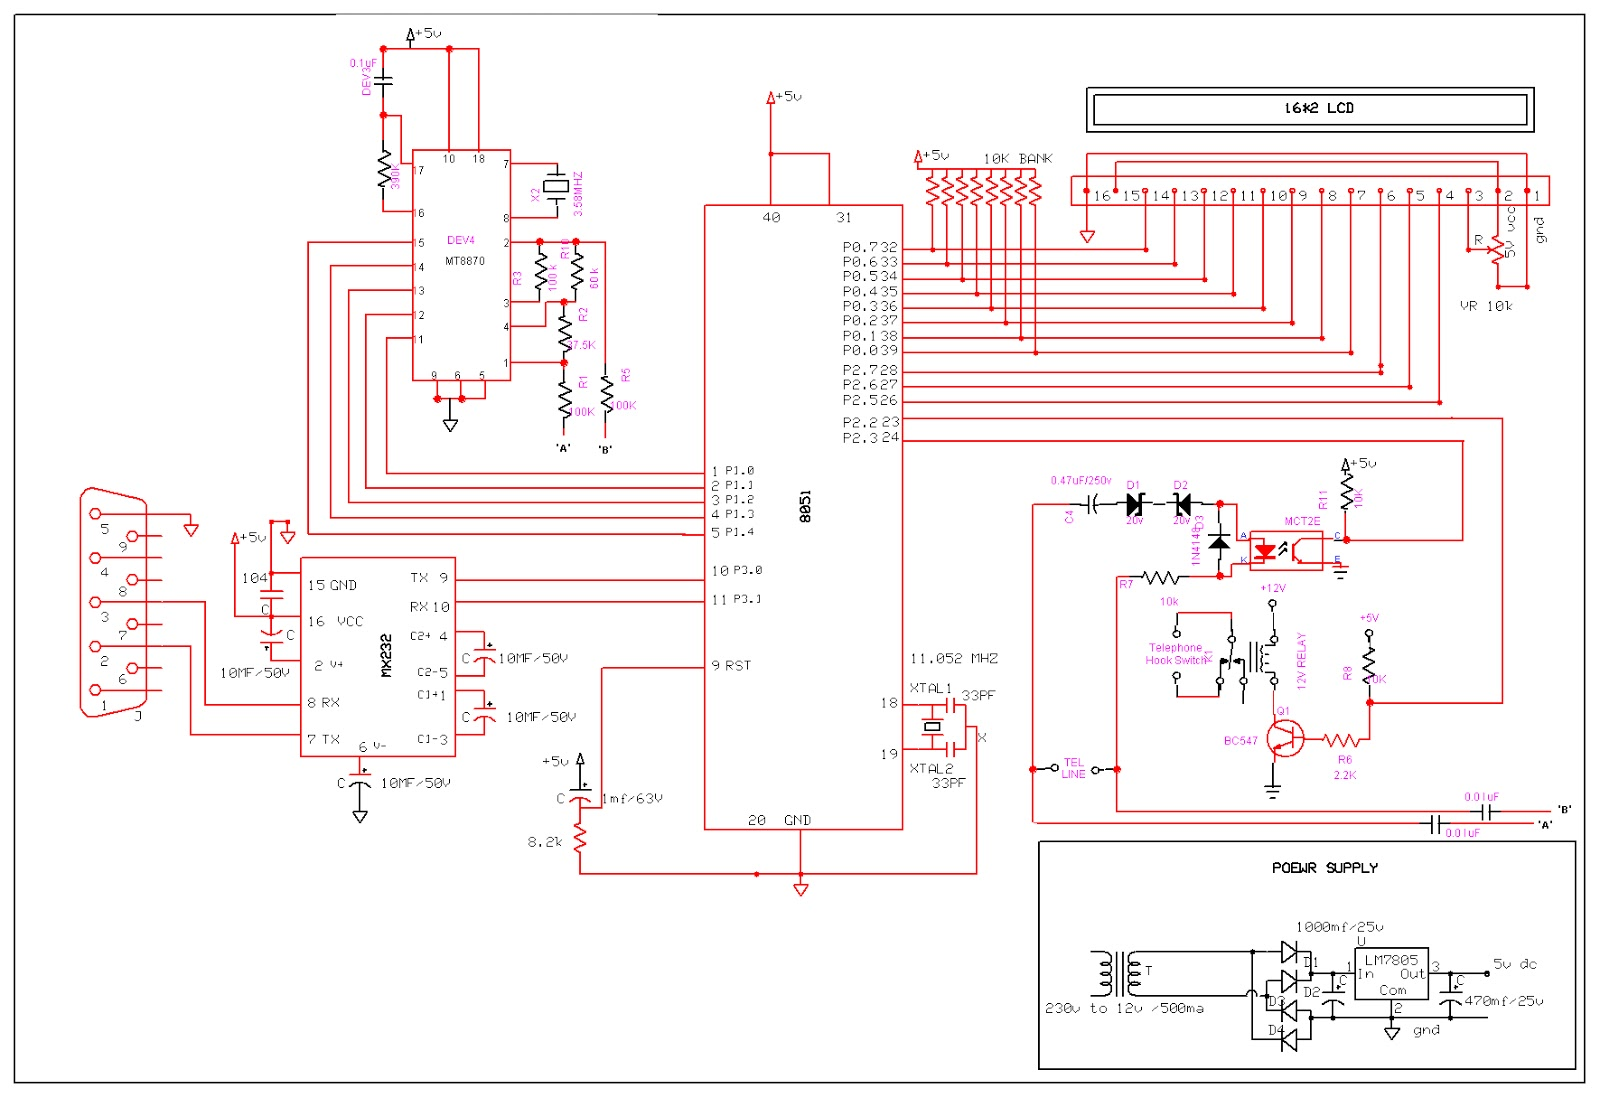 Results Page 583 About 0 30 Volts Searching Circuits At Pwm Motor Speed Controller Circuit Using Ic556 Homemade Ivrs Final Year Project Full Description